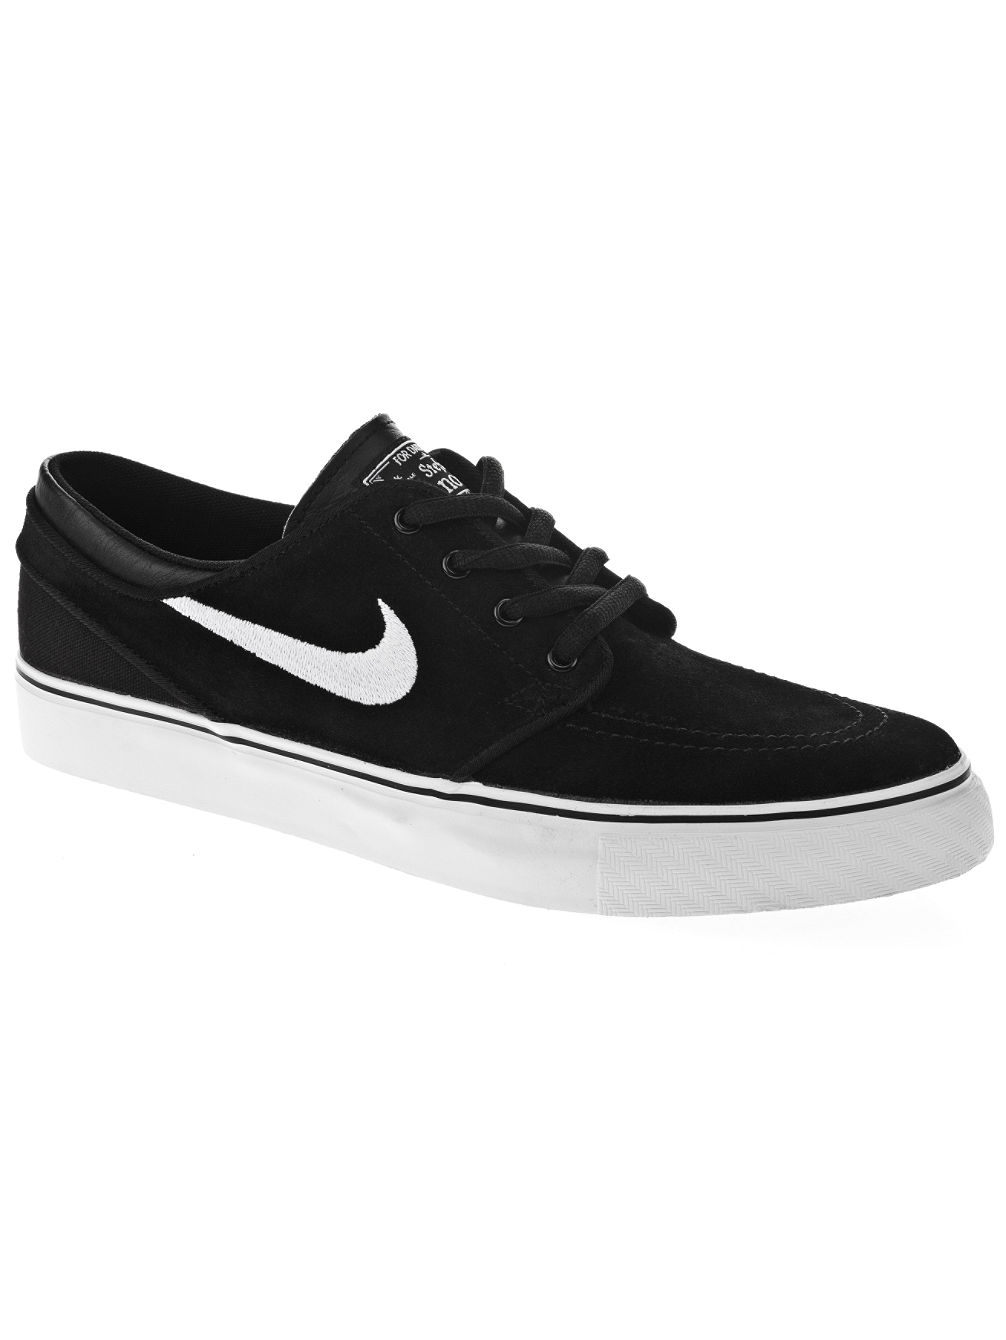 Stefan Janoski Skate Shoes Boys